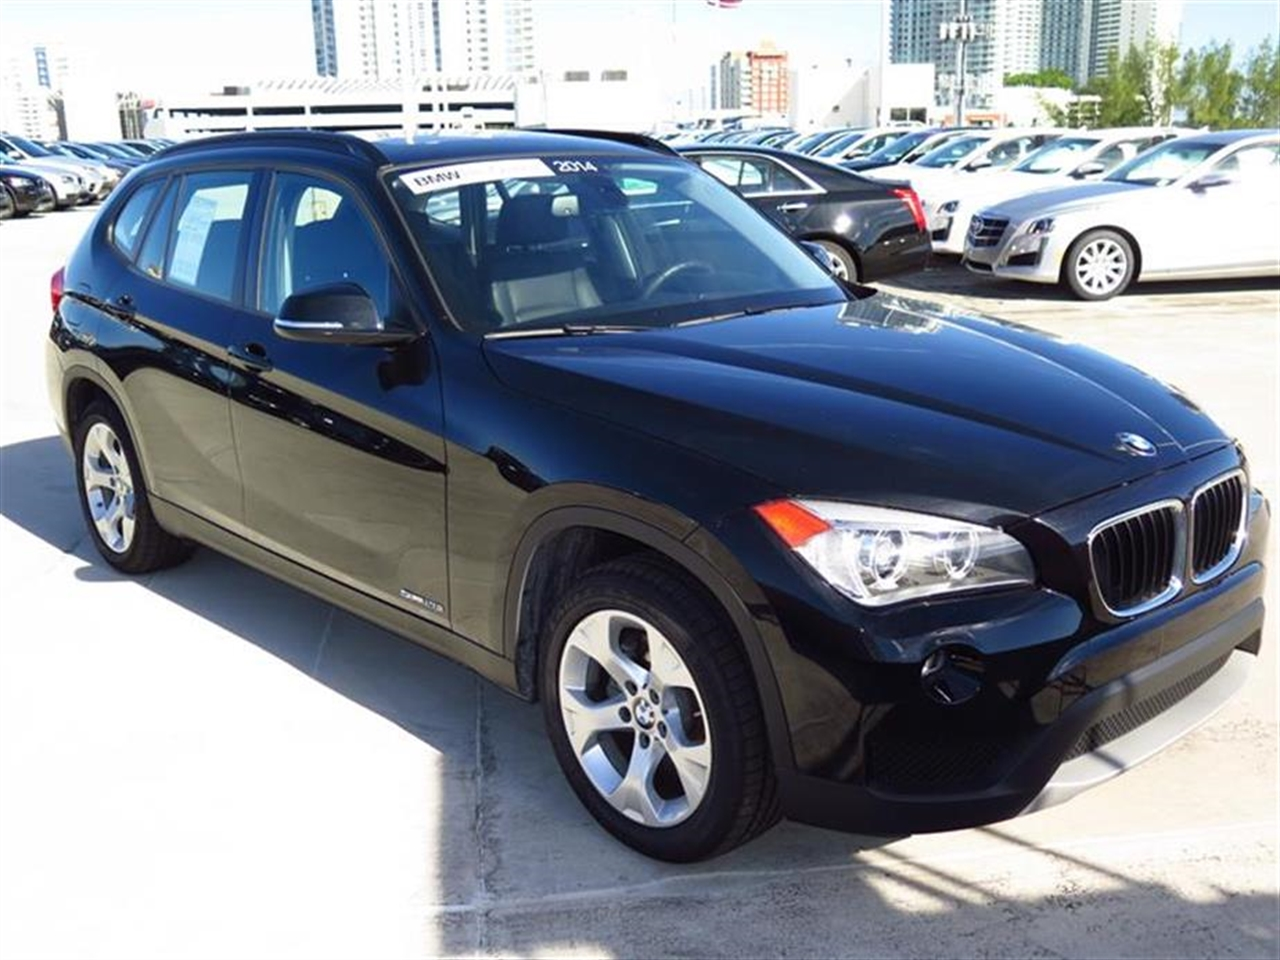 2014 BMW X1 RWD 4dr sDrive28i 10064 miles 2 Seatback Storage Pockets 3 12V DC Power Outlets LEA